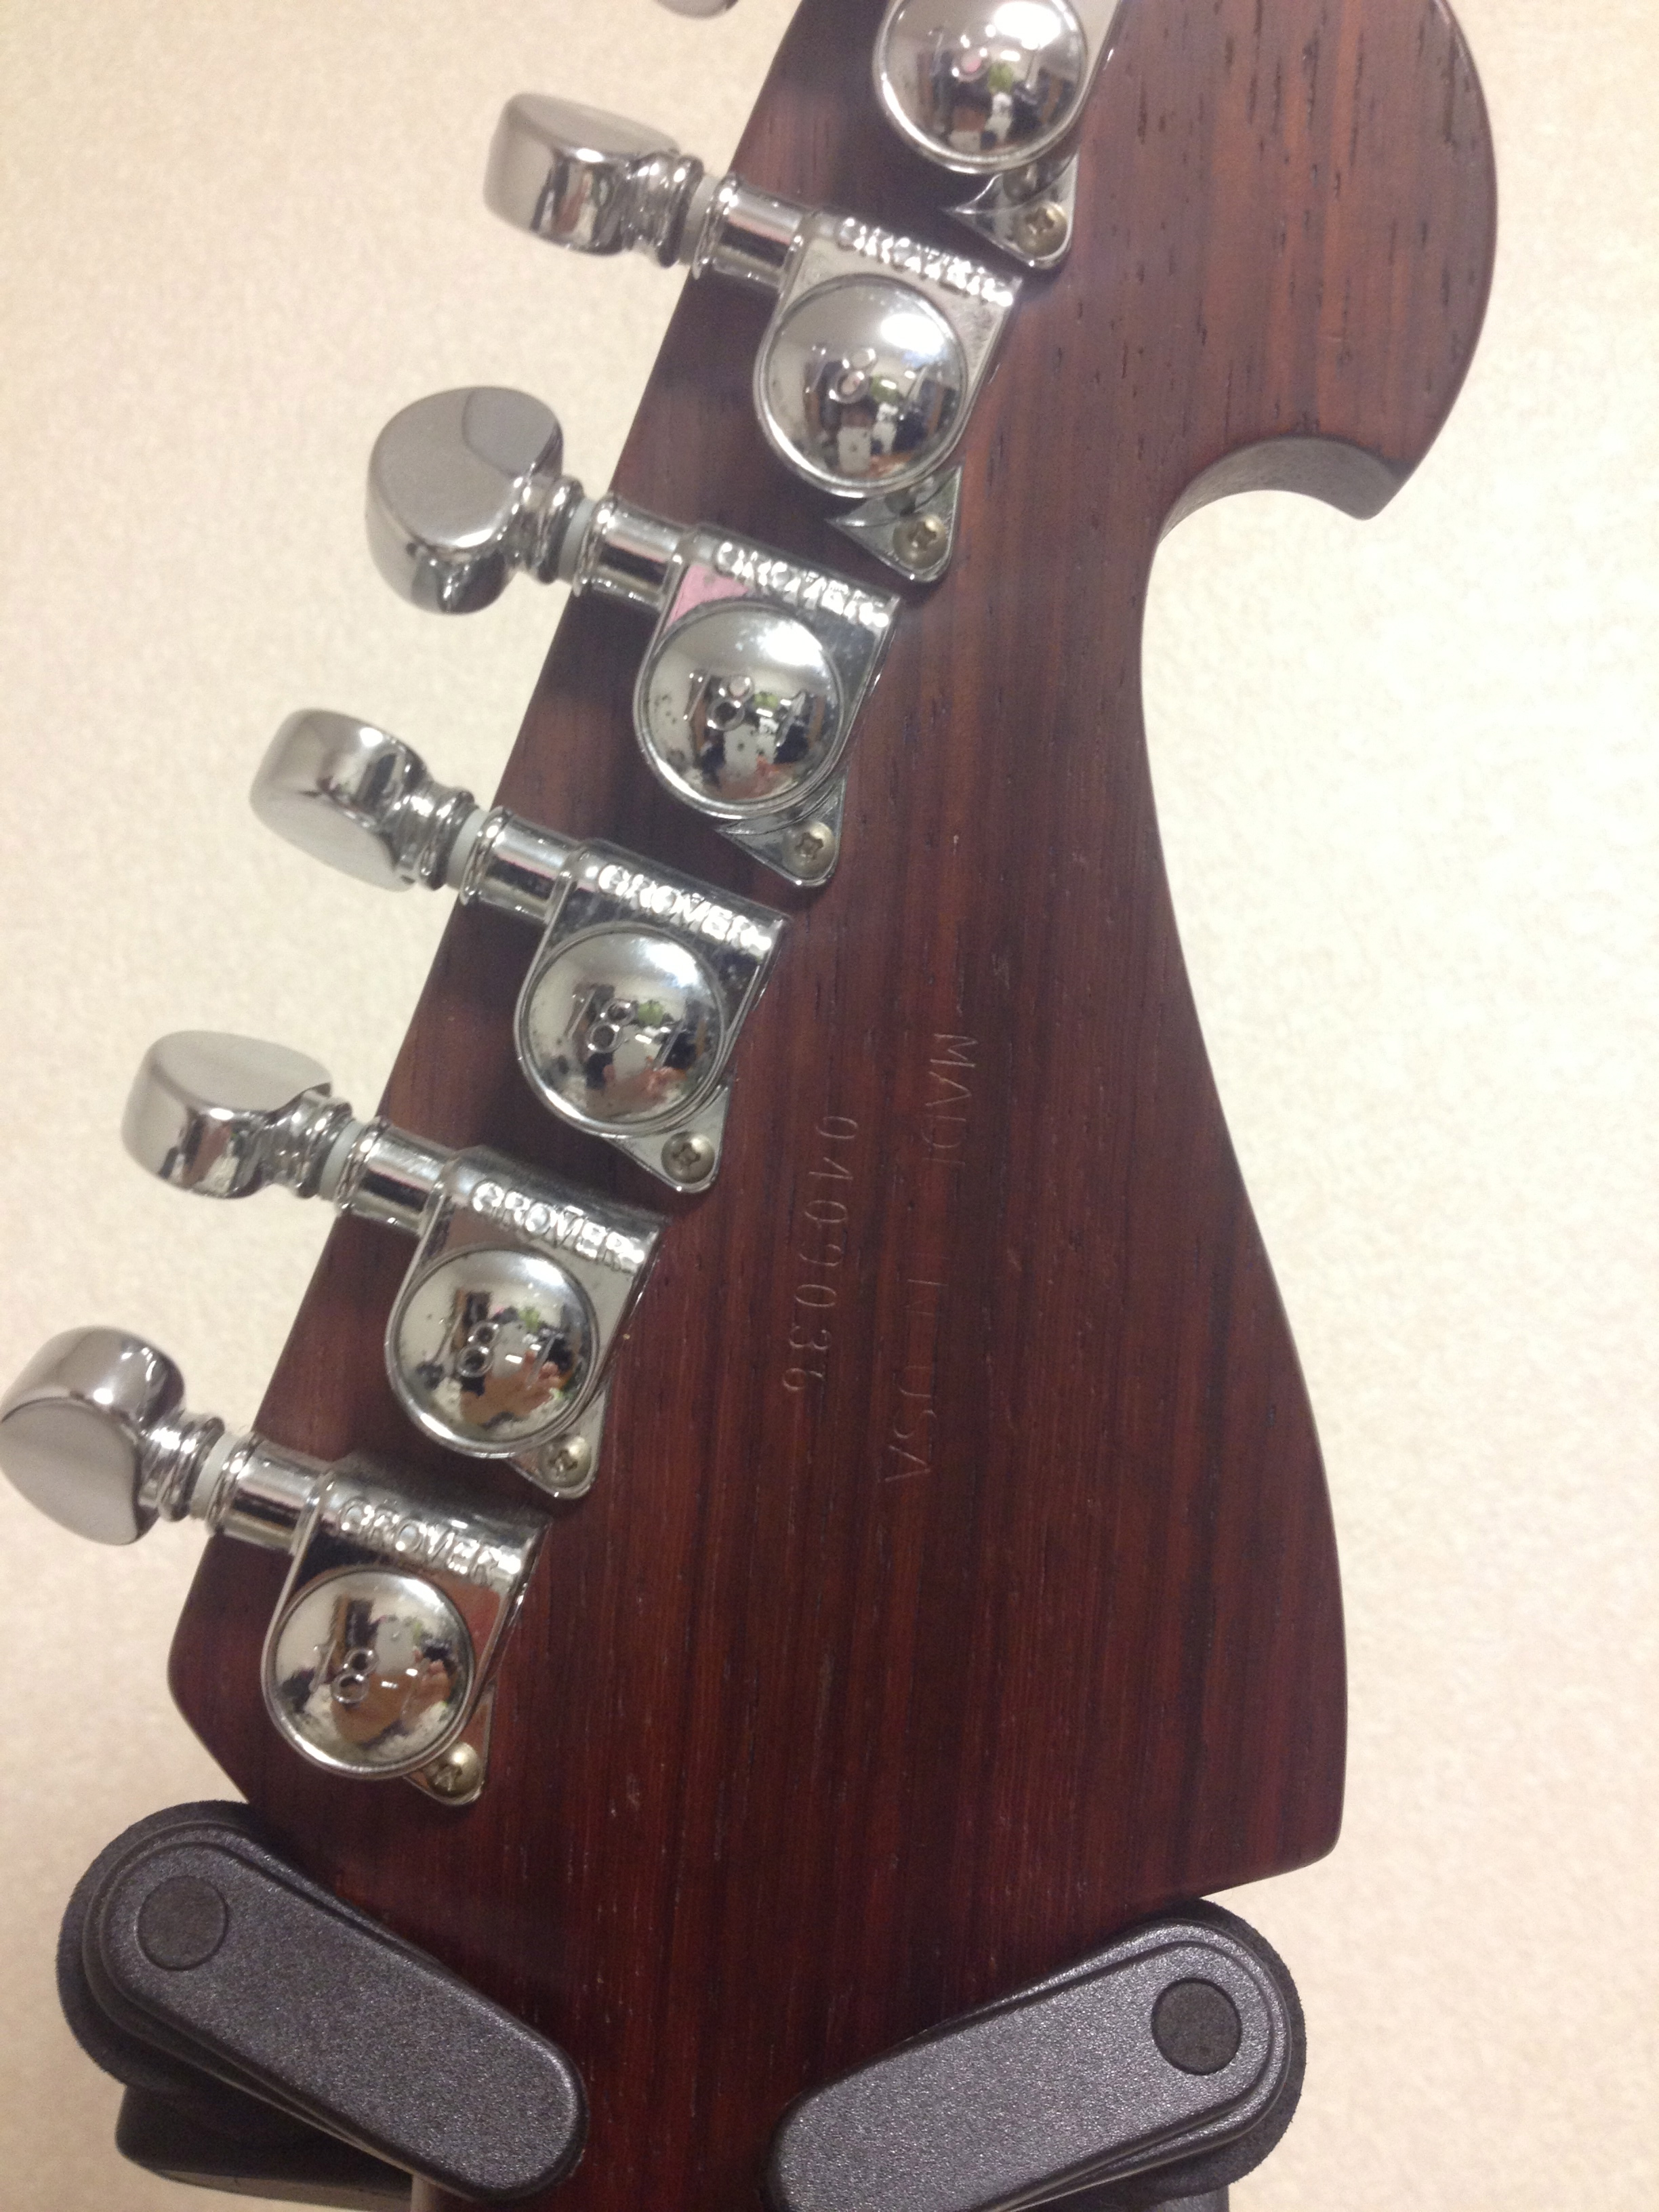 Washburn N4 pad auk head back